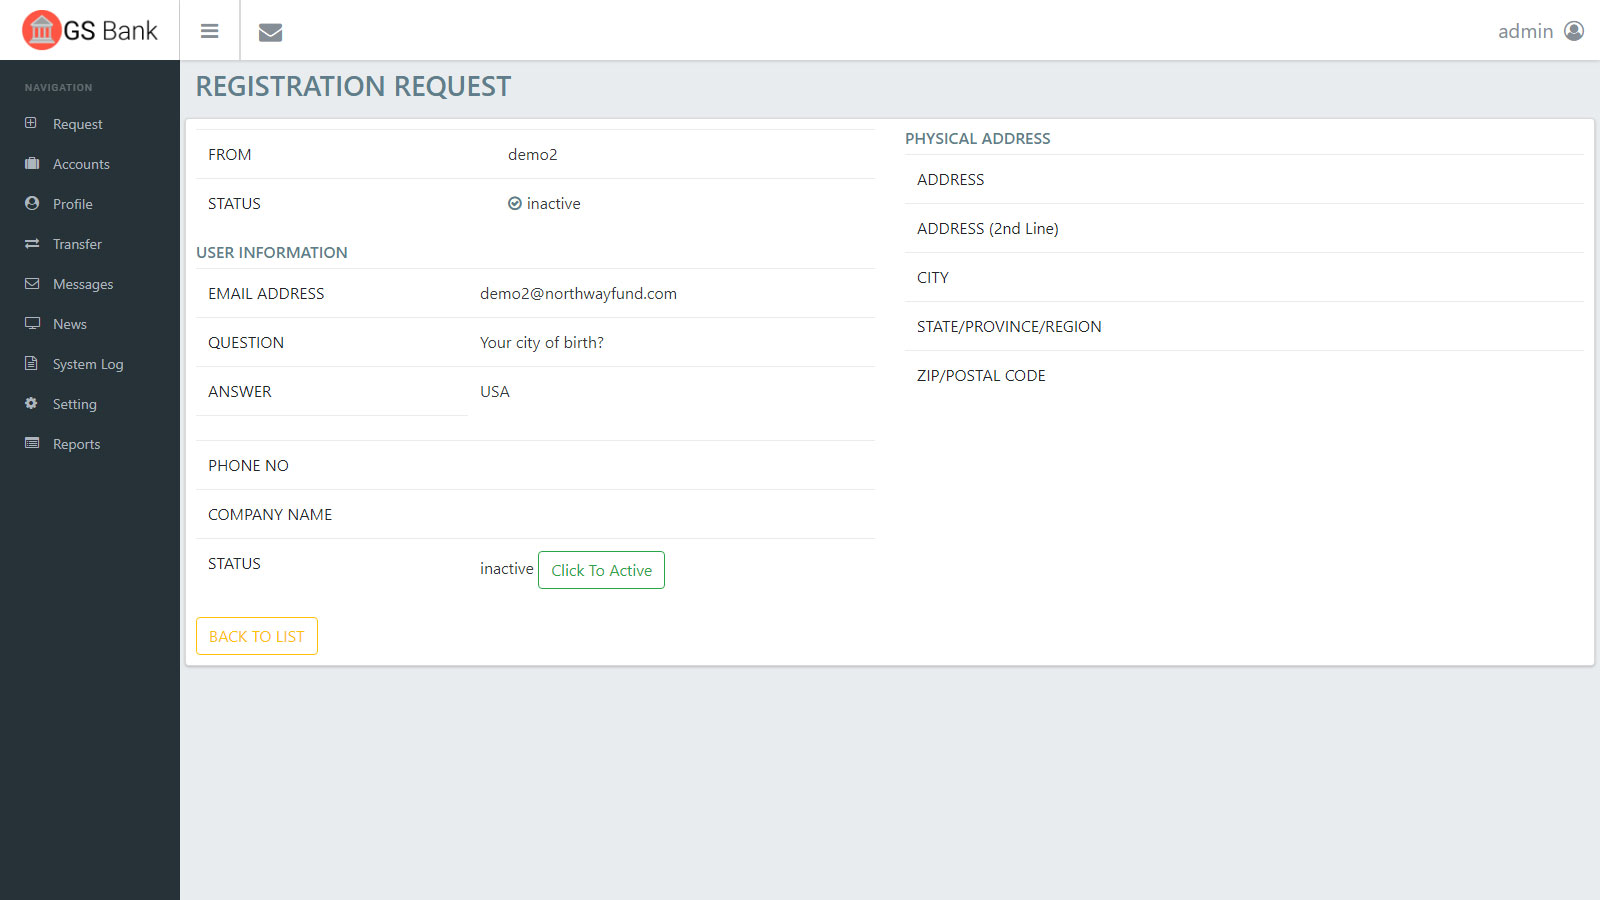 3. Request-Registration-view